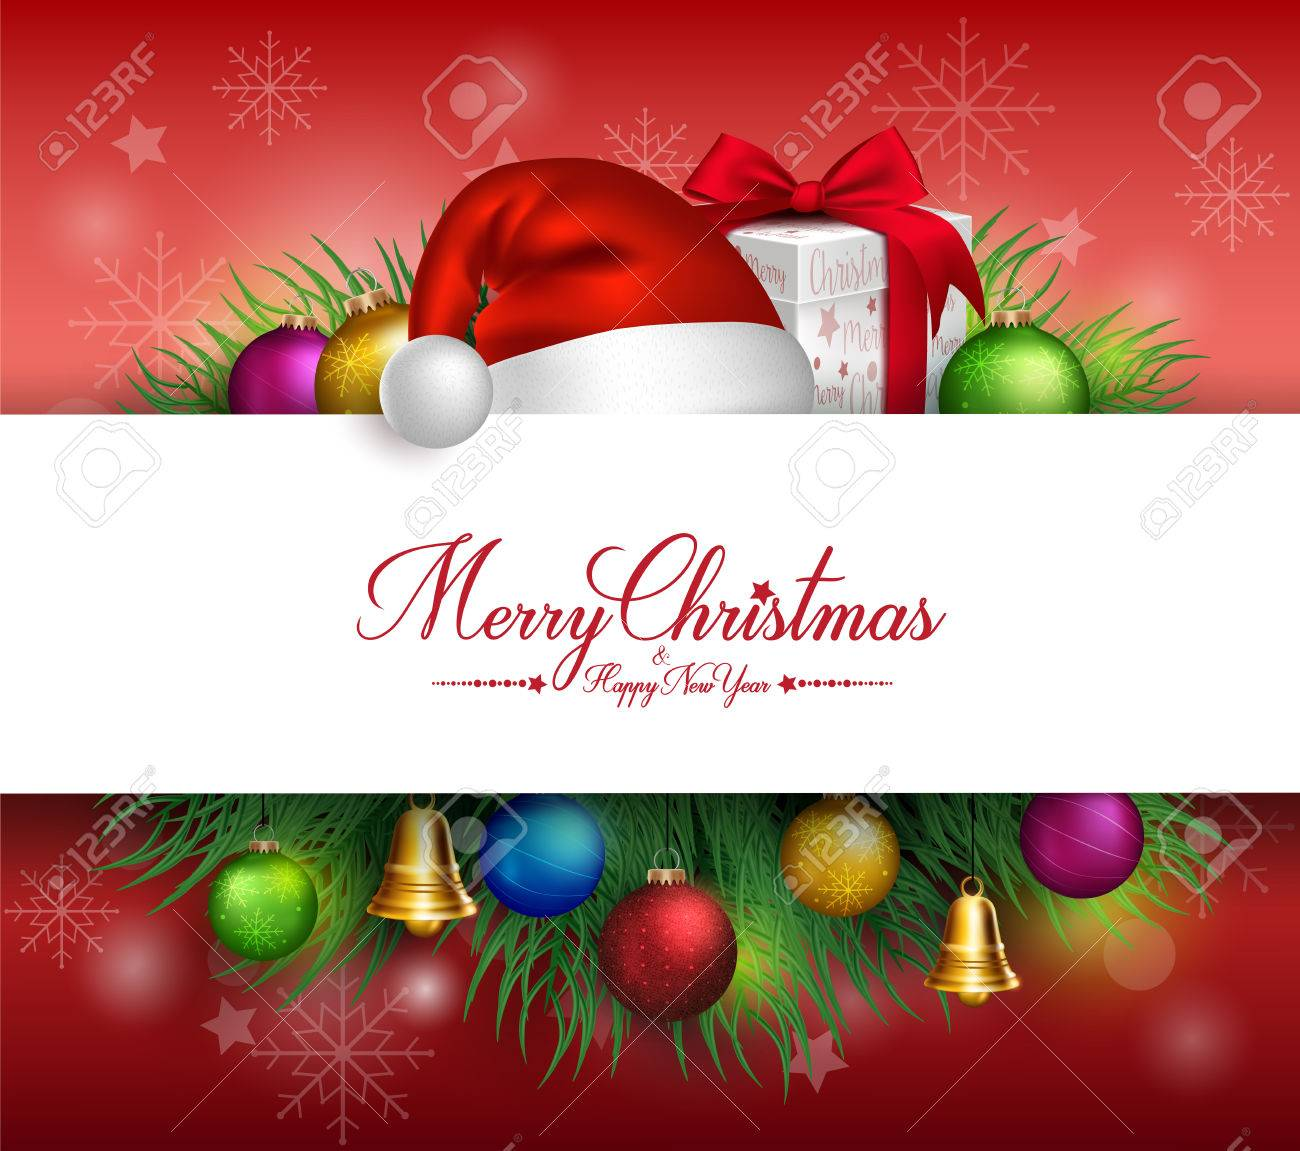 Merry Christmas Greetings Card in White Space for Text with Decorations and Objects in Background. Vector Illustration - 46314200